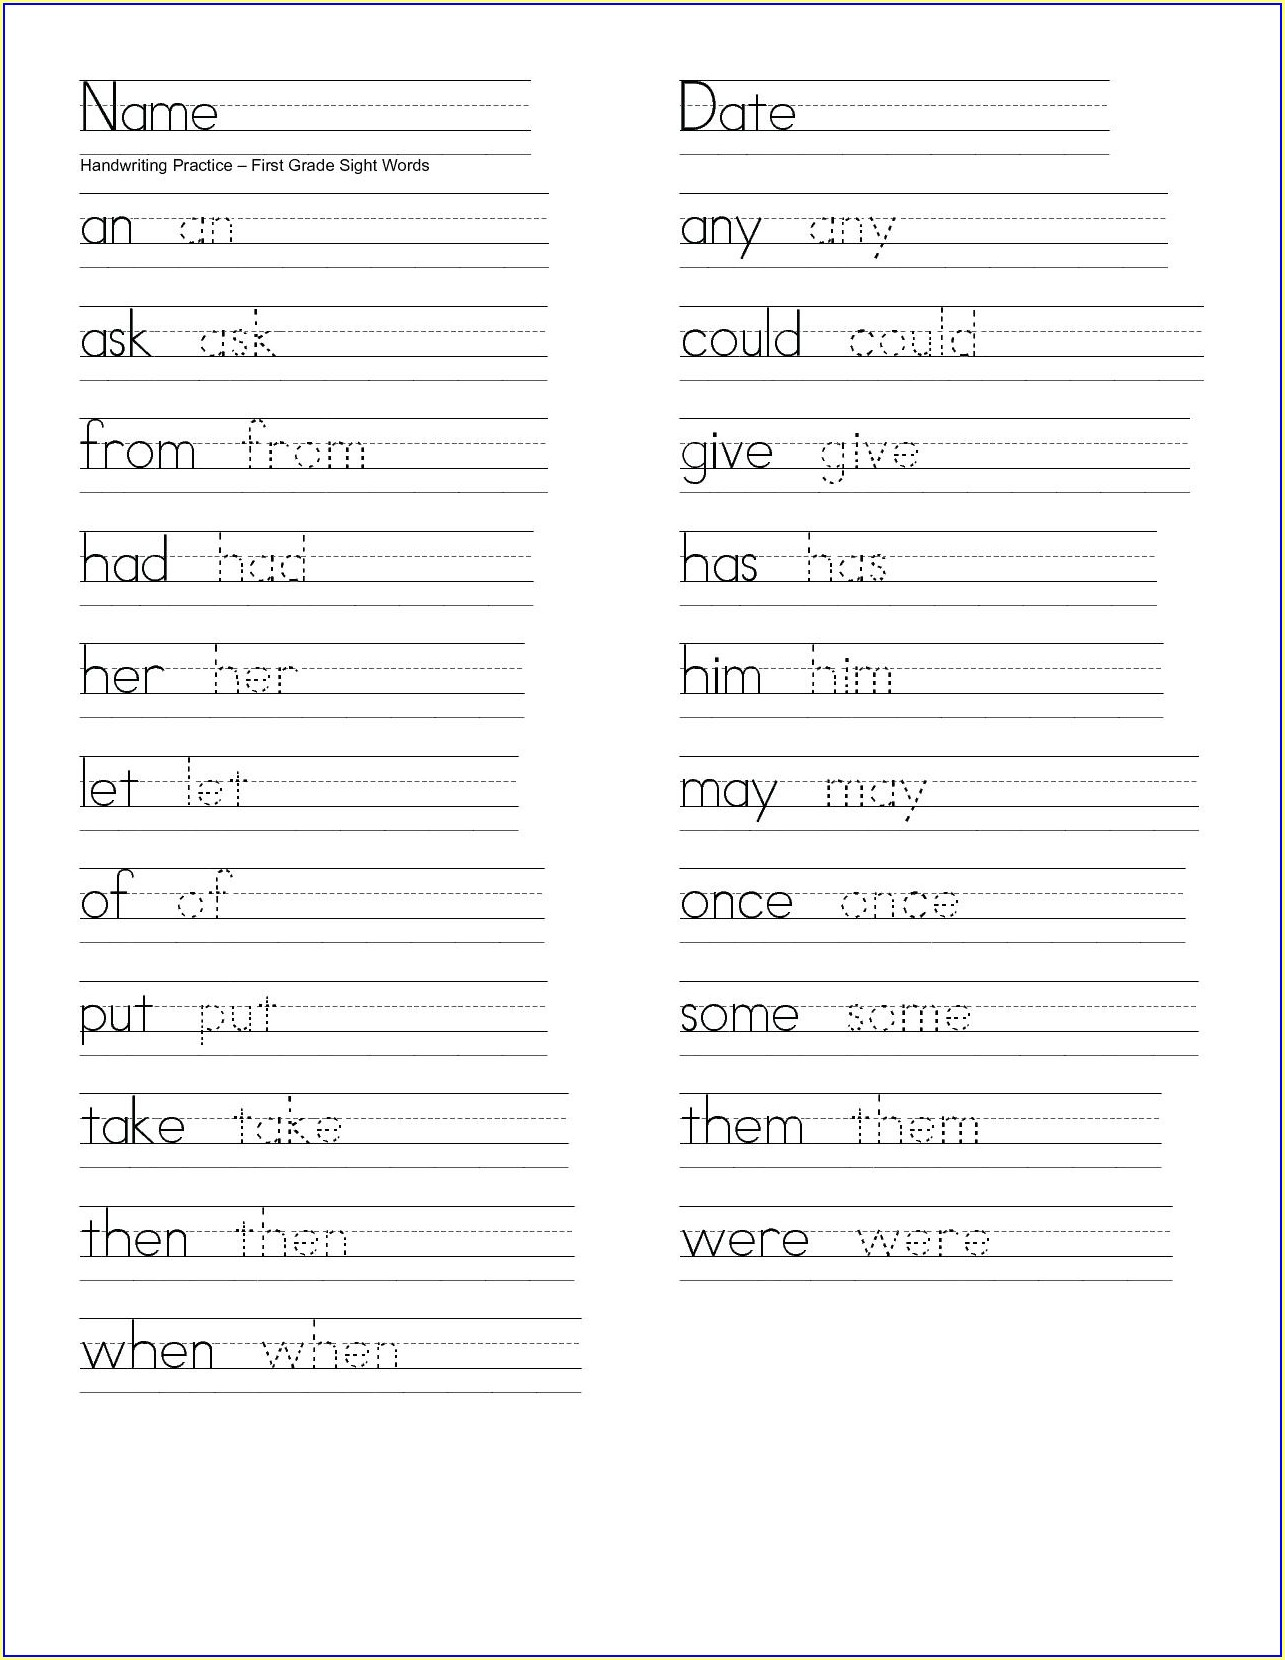 Worksheet On Name Writing